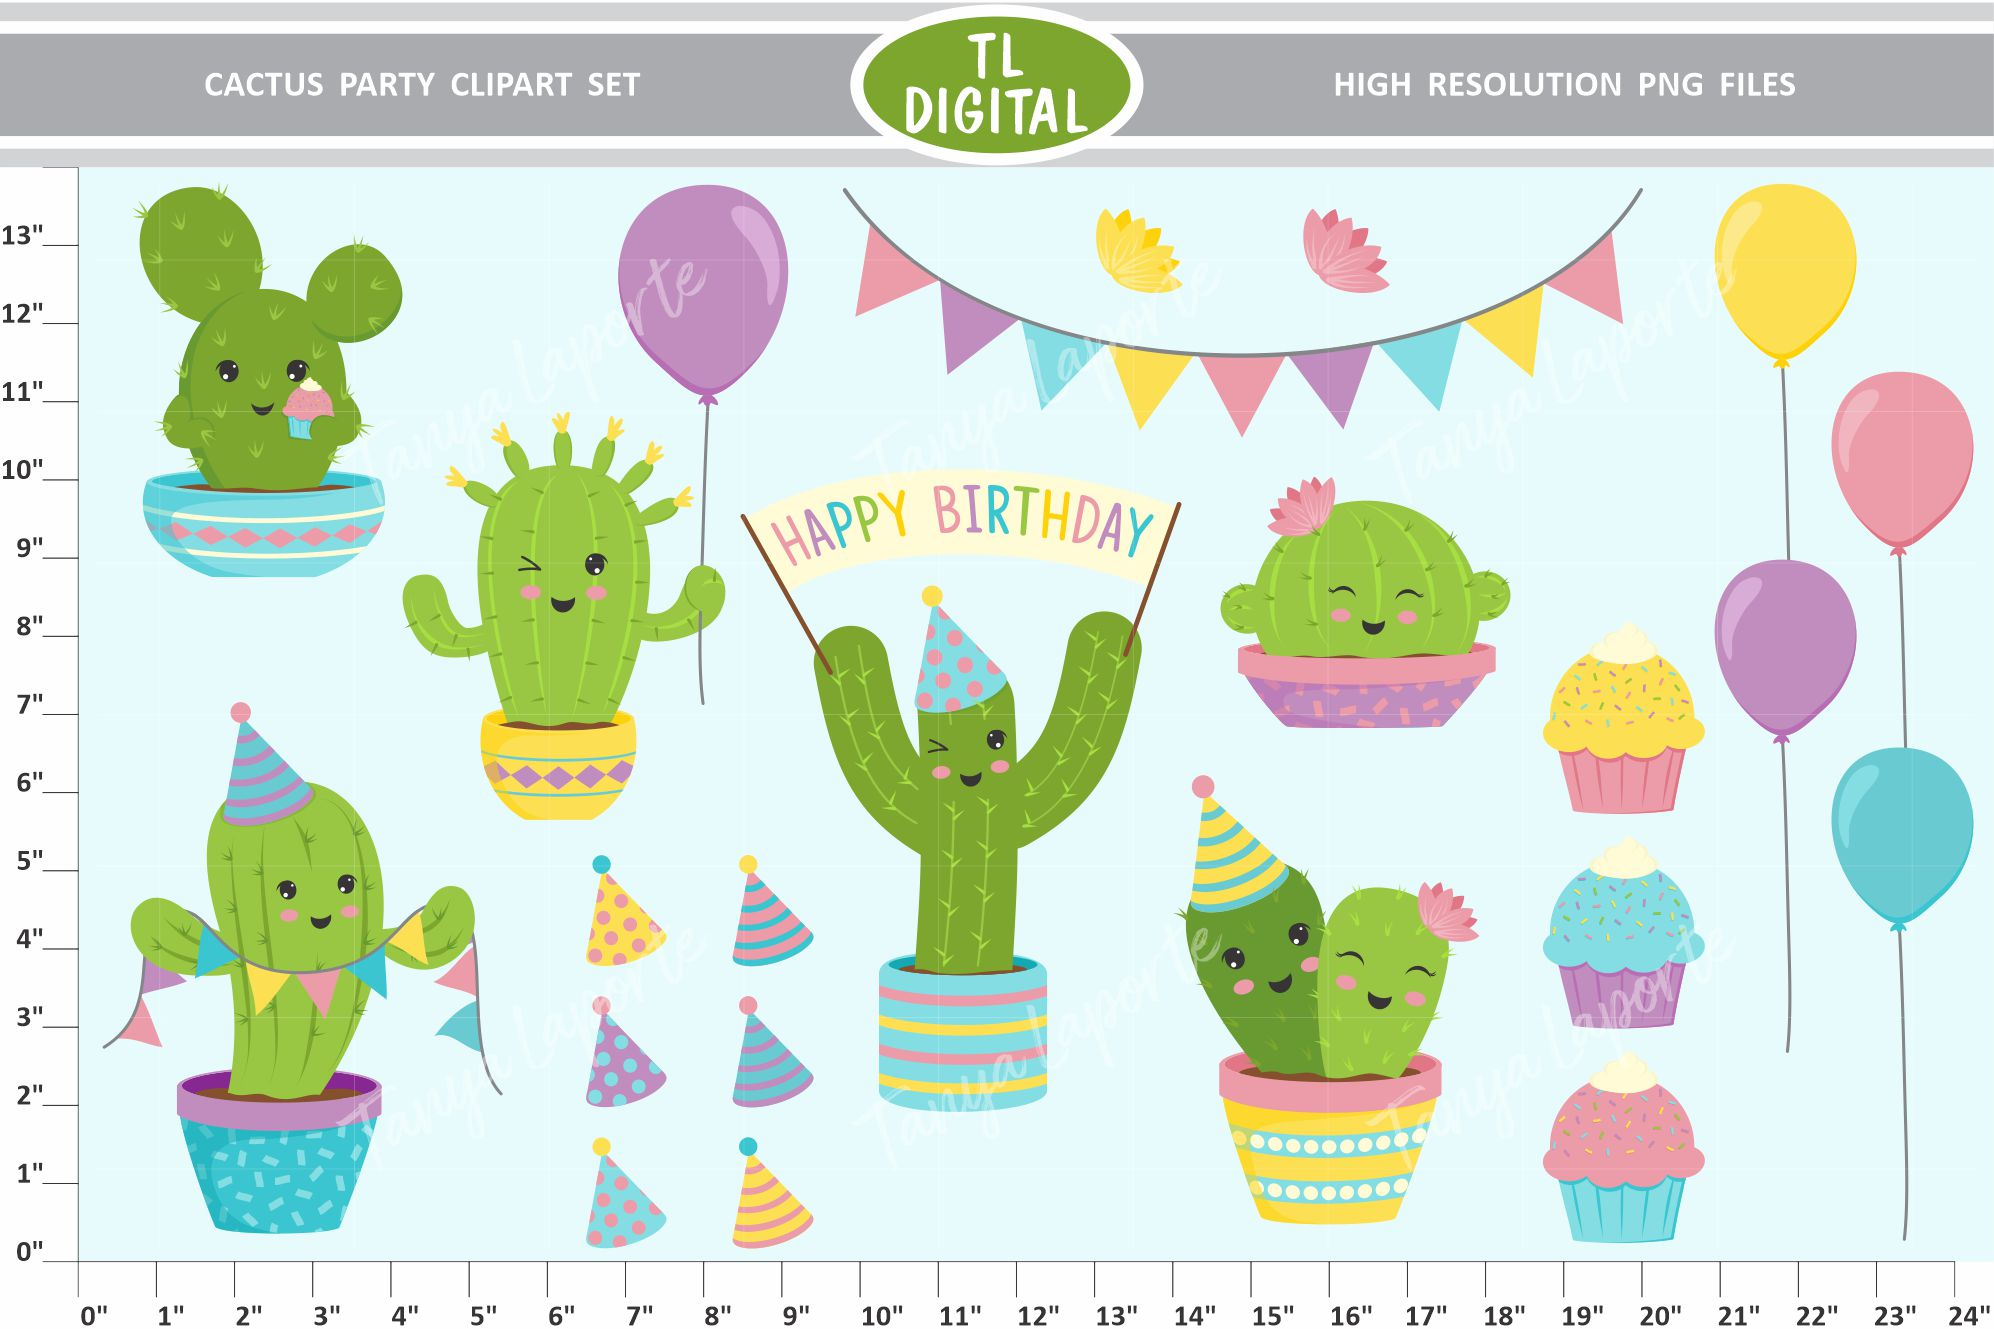 Download Free Cactus Party Clipart Set 22 Graphics Graphic By Tl Digital SVG Cut Files